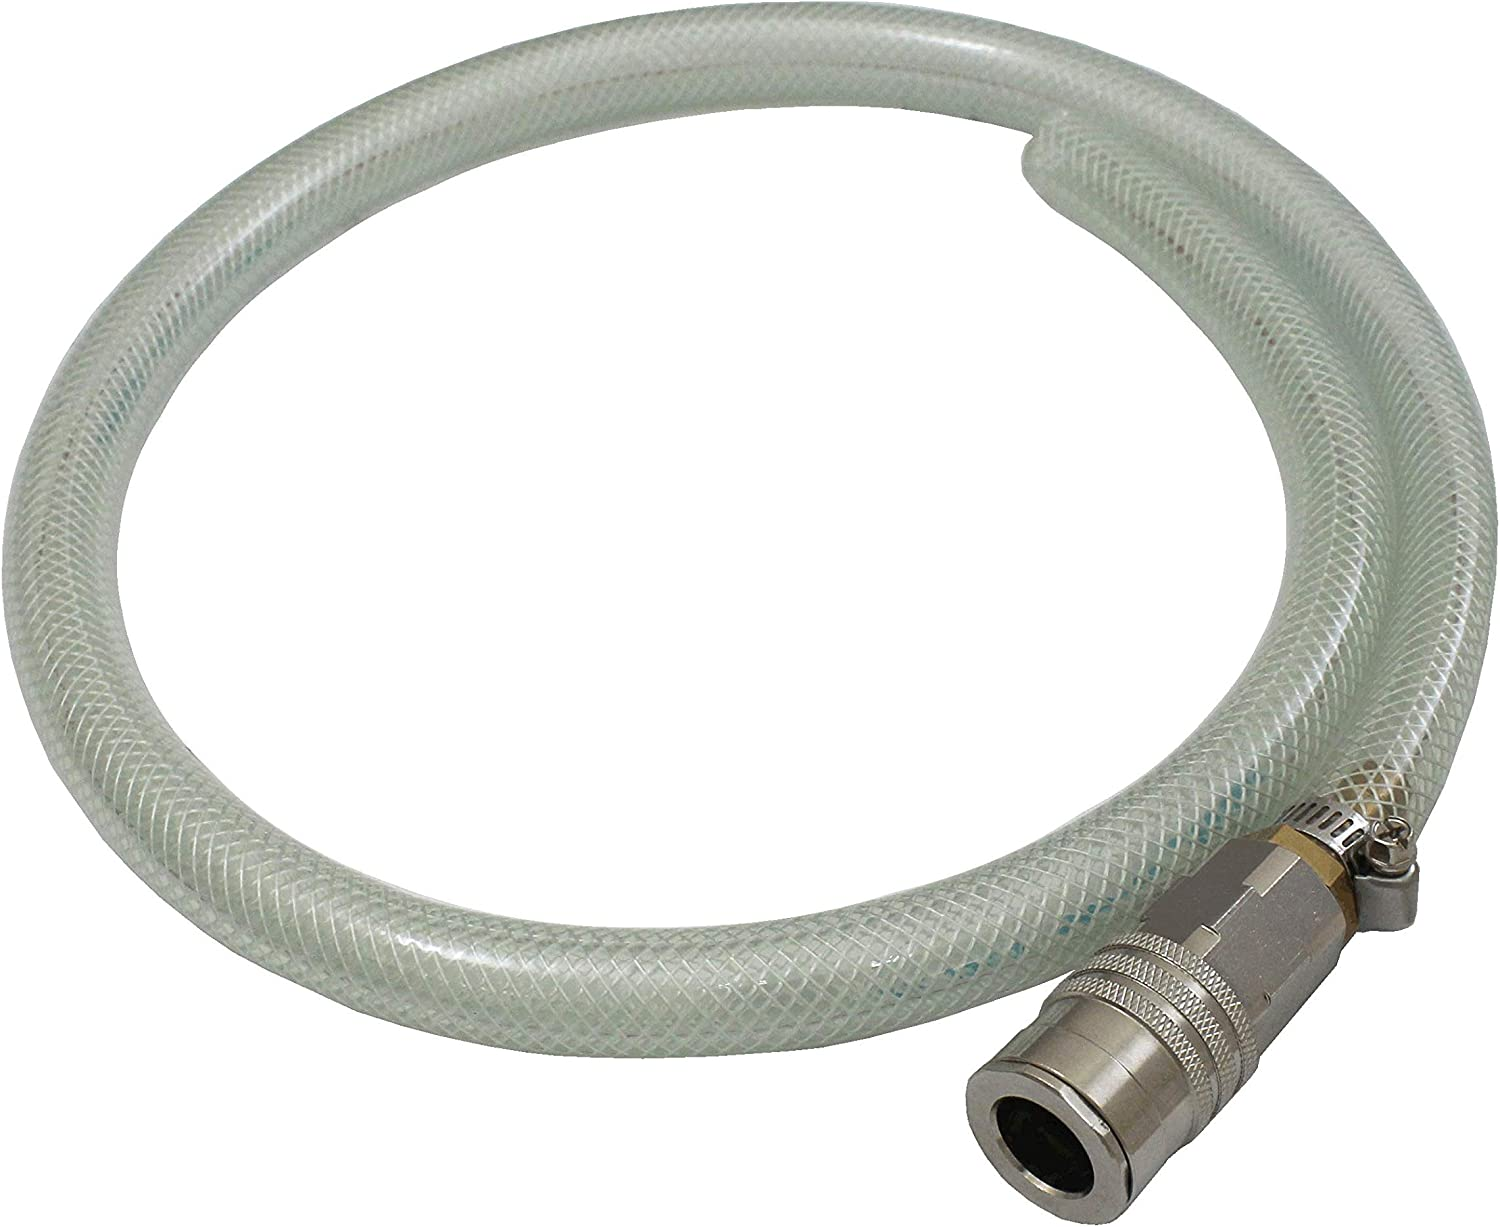 Volvo and Mack Truck 2004 to 2019 Radiator Coolant Drain Hose Heavy Duty Fast Flowing Durable Alternative to OEM 9996049 Leak free and Compatible with D11 D13 D16 and MP7 MP8 MP10 Engines